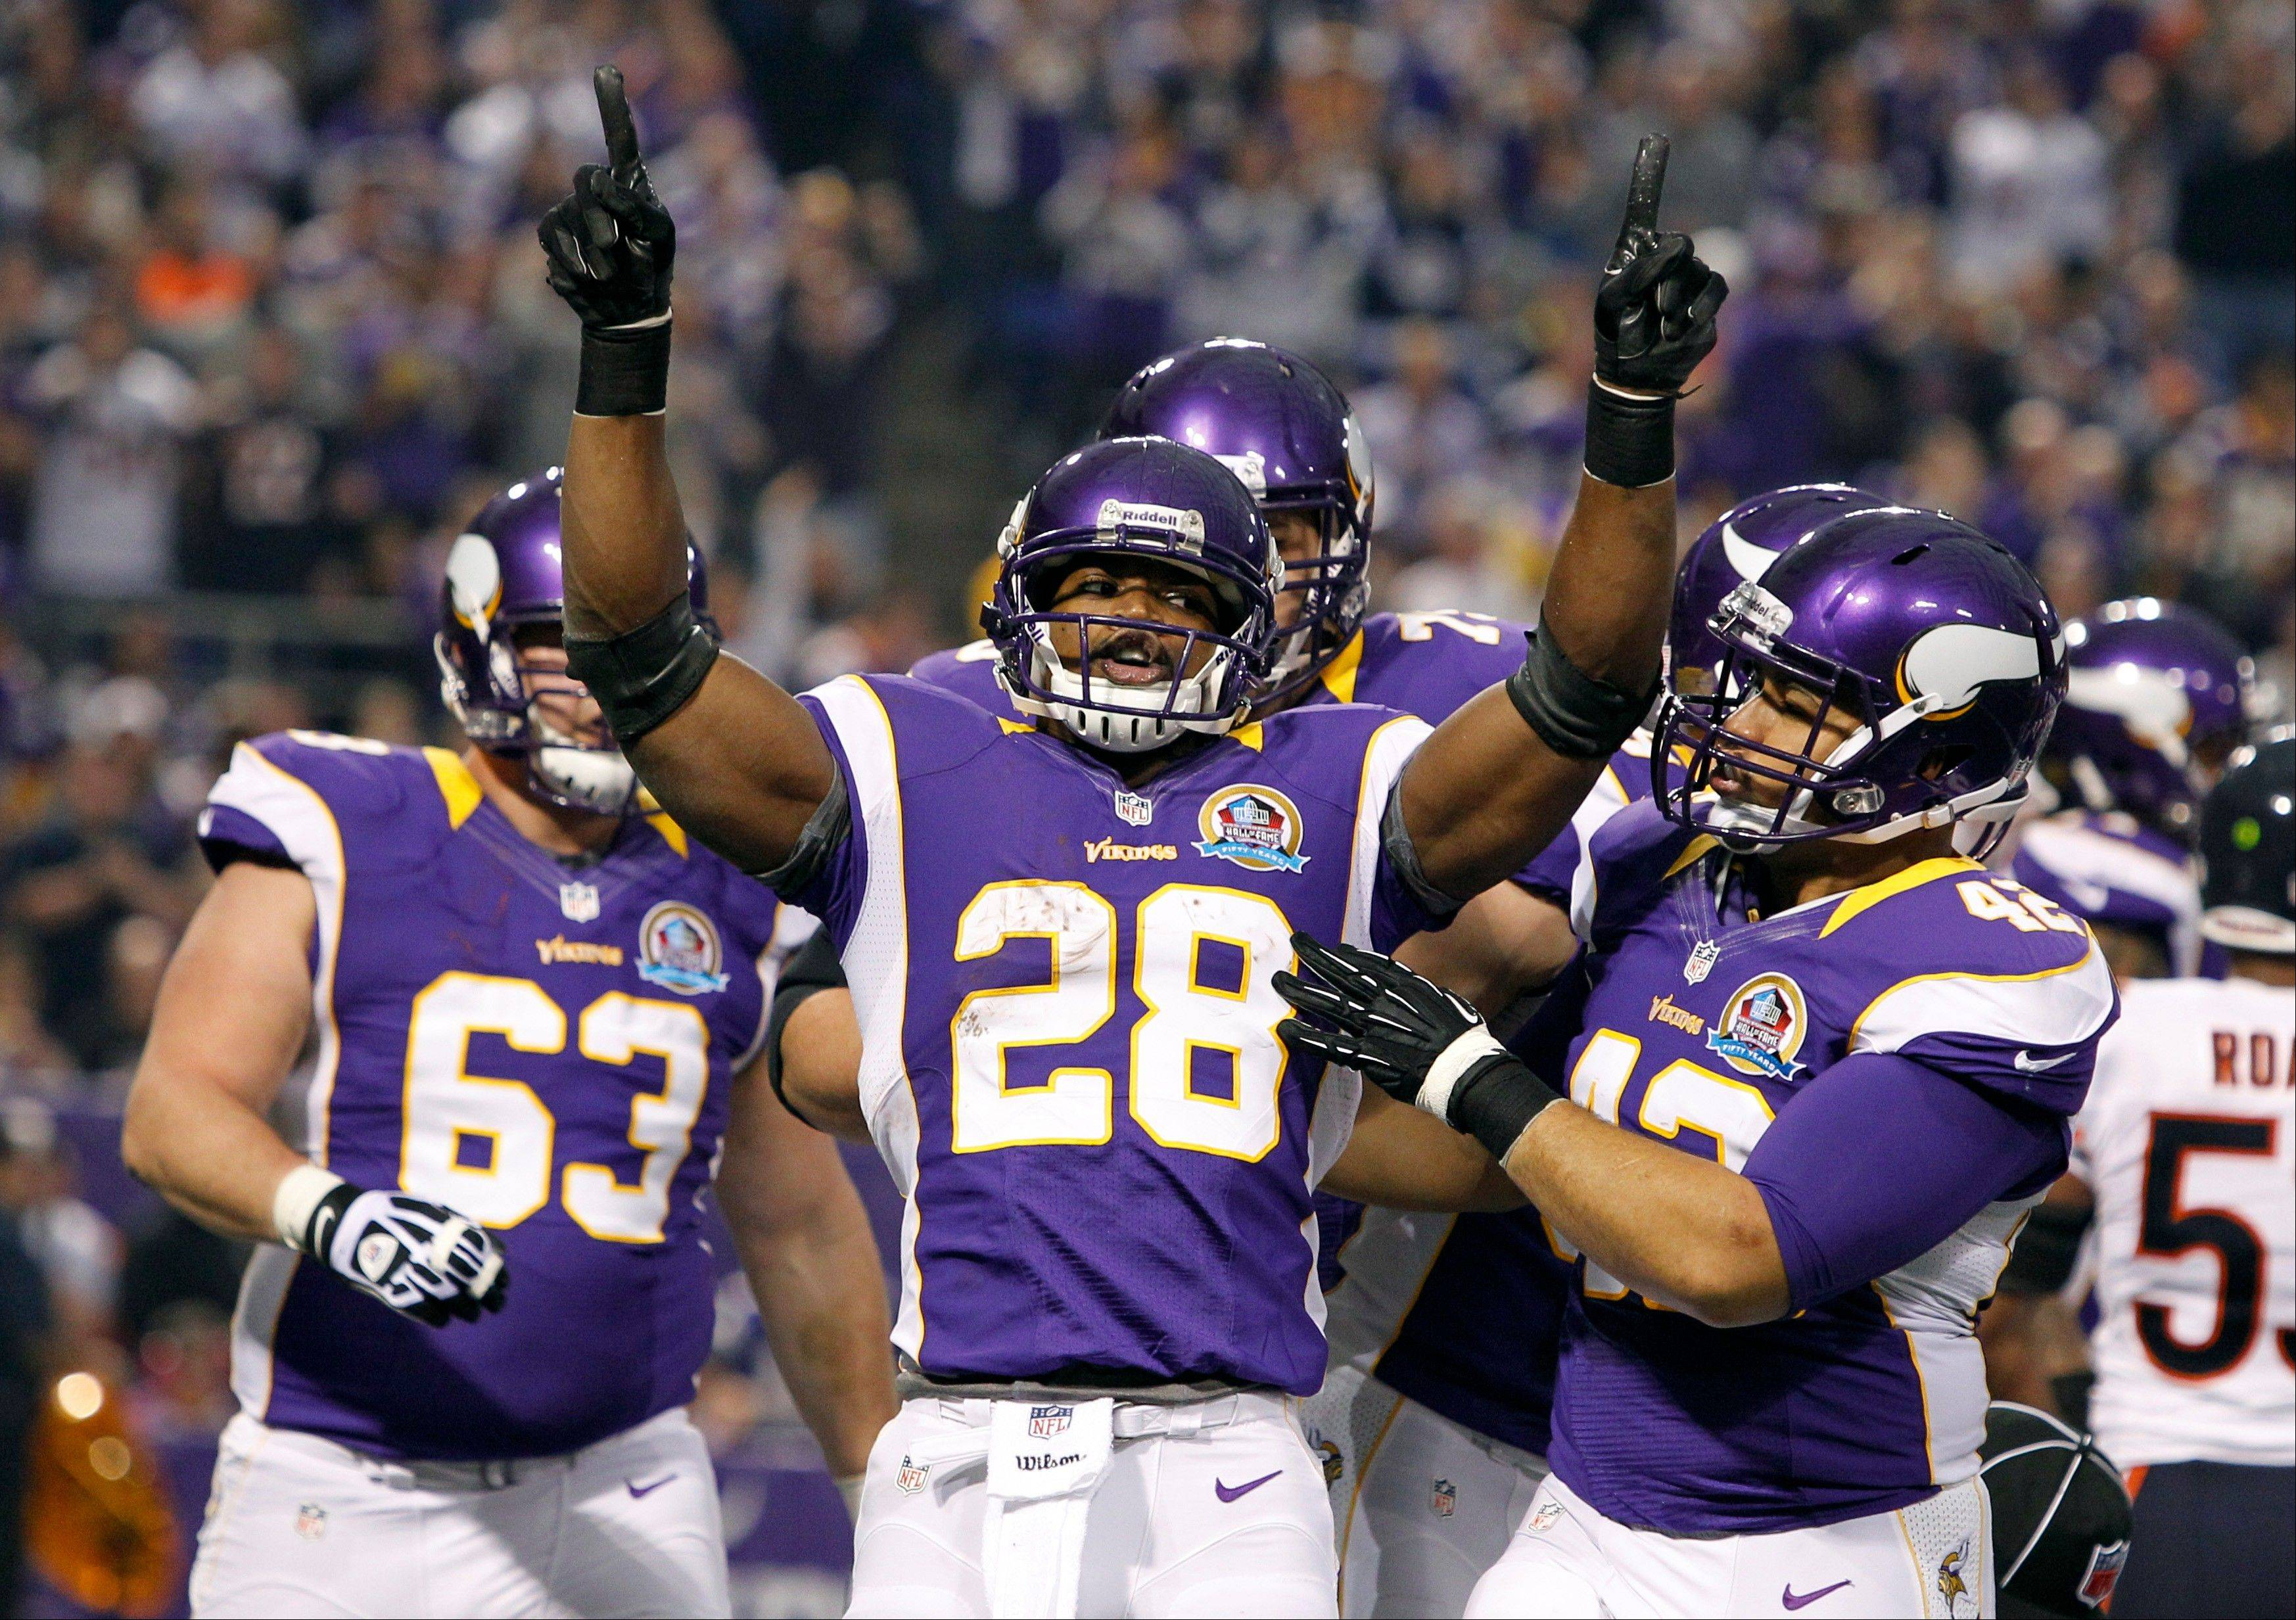 Minnesota Vikings running back Adrian Peterson celebrates with teammate Jerome Felton, right, after scoring on a 1-yard touchdown run during the first half.